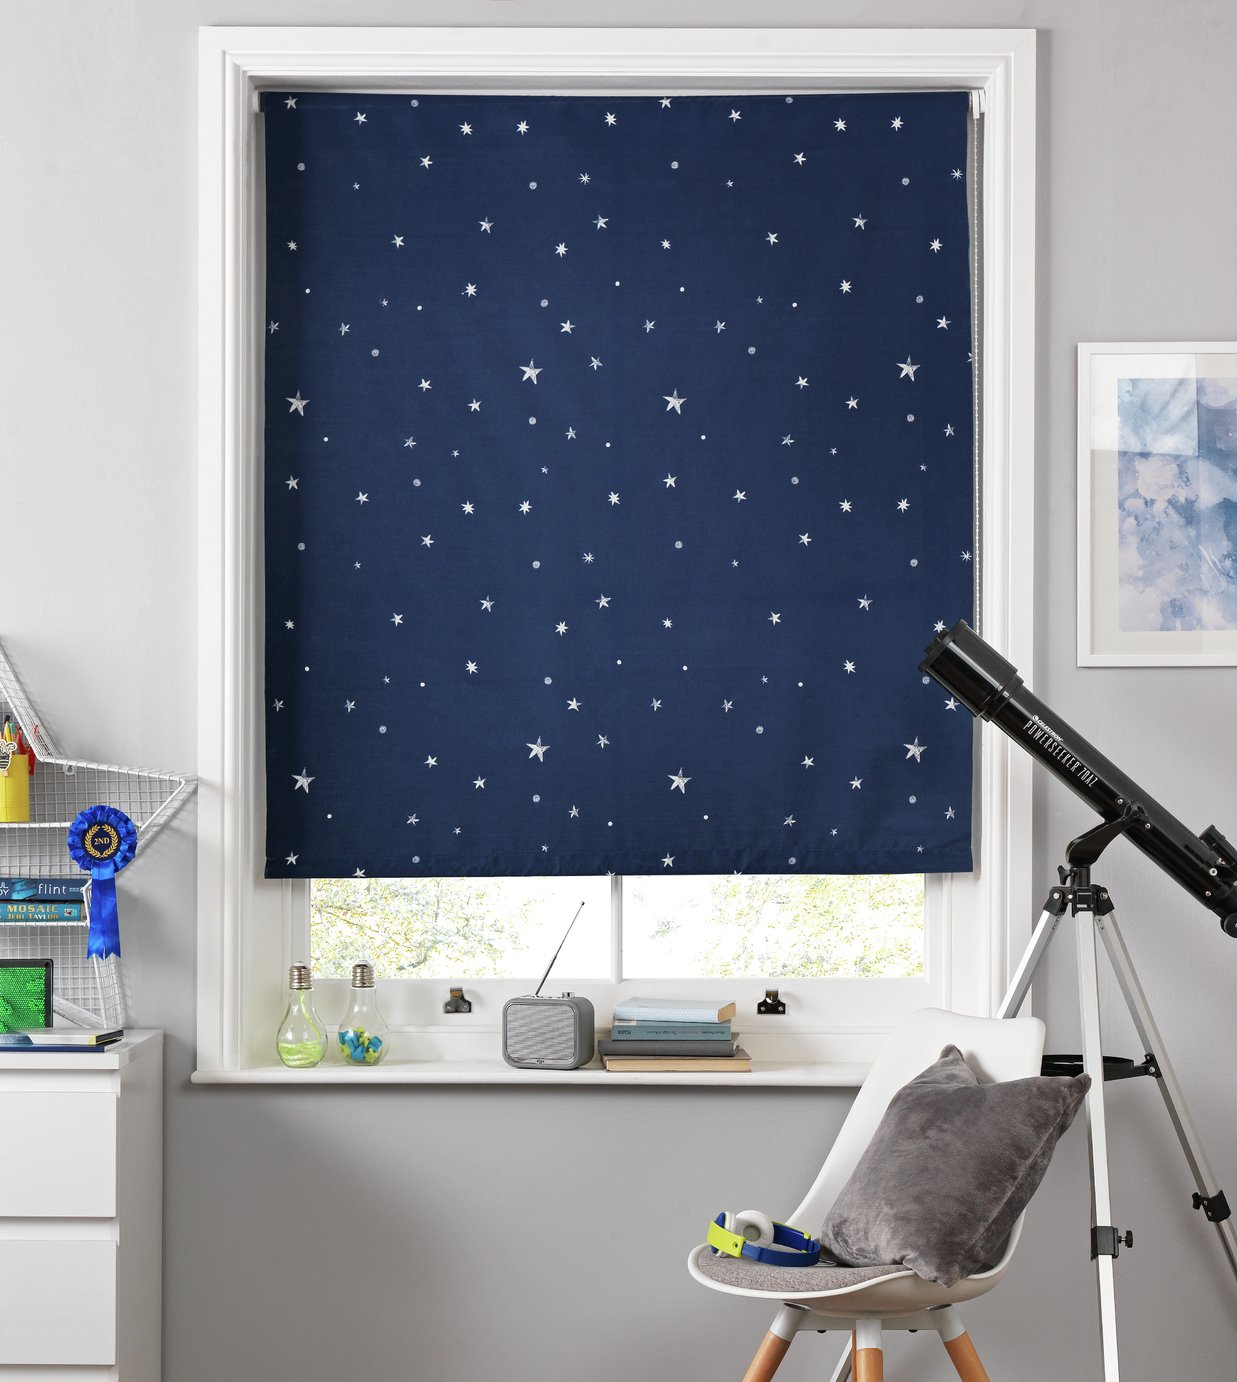 Argos Home Space Blackout Roller Blind - 3ft